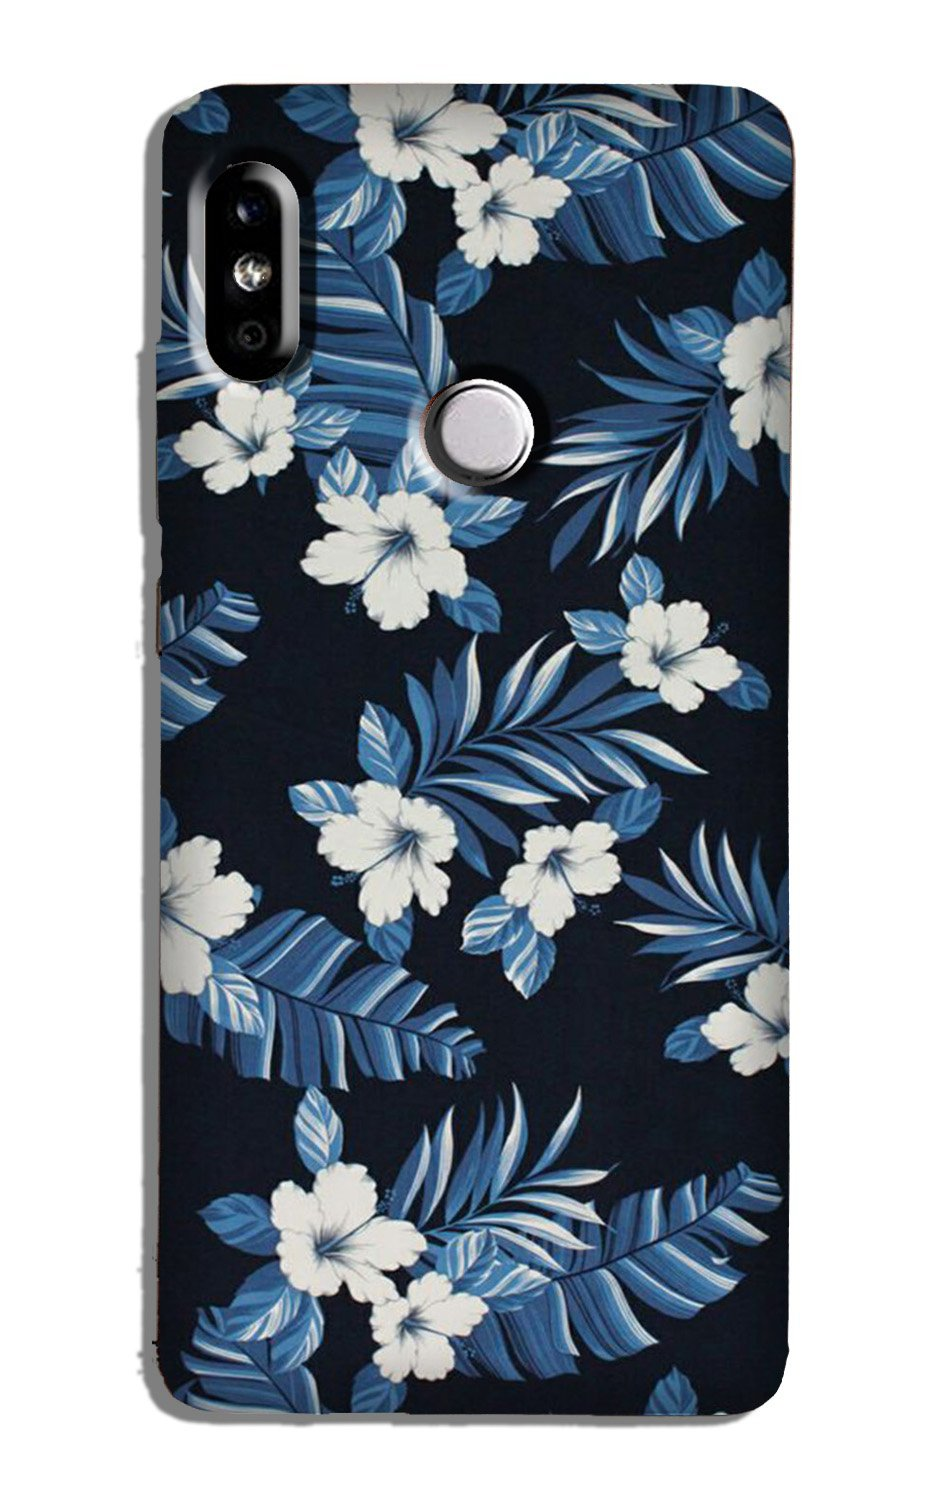 White flowers Blue Background2 Case for Redmi Note 5 Pro